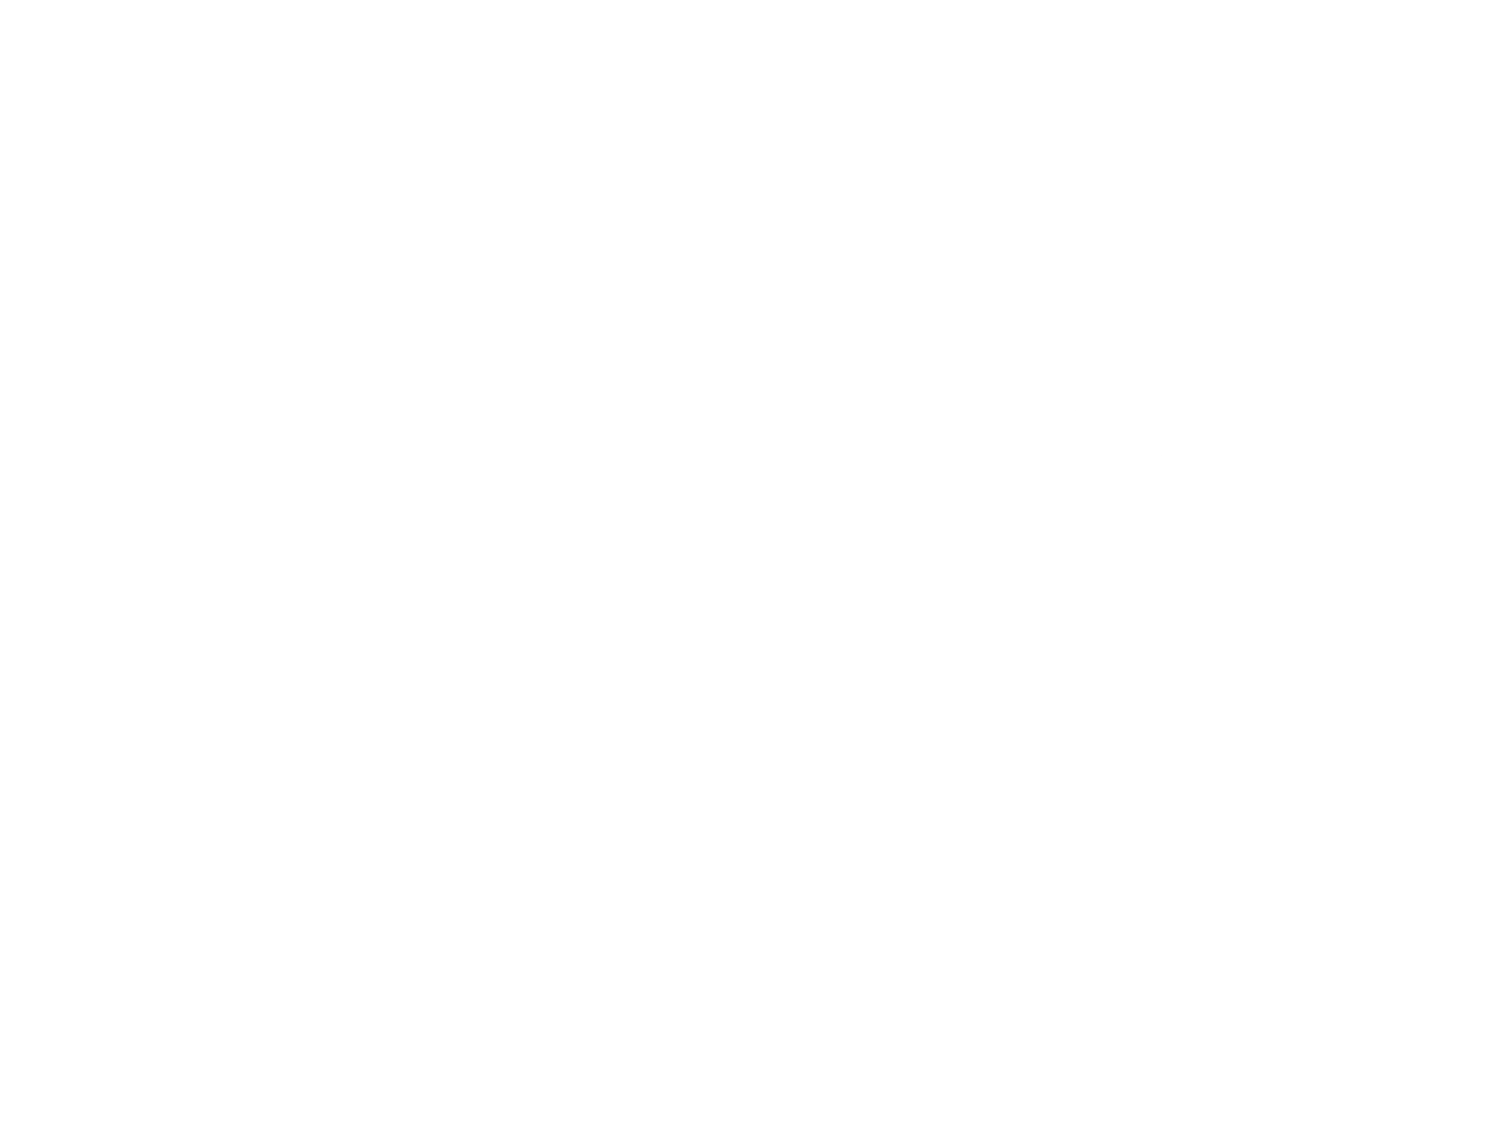 Andy & Chris Team